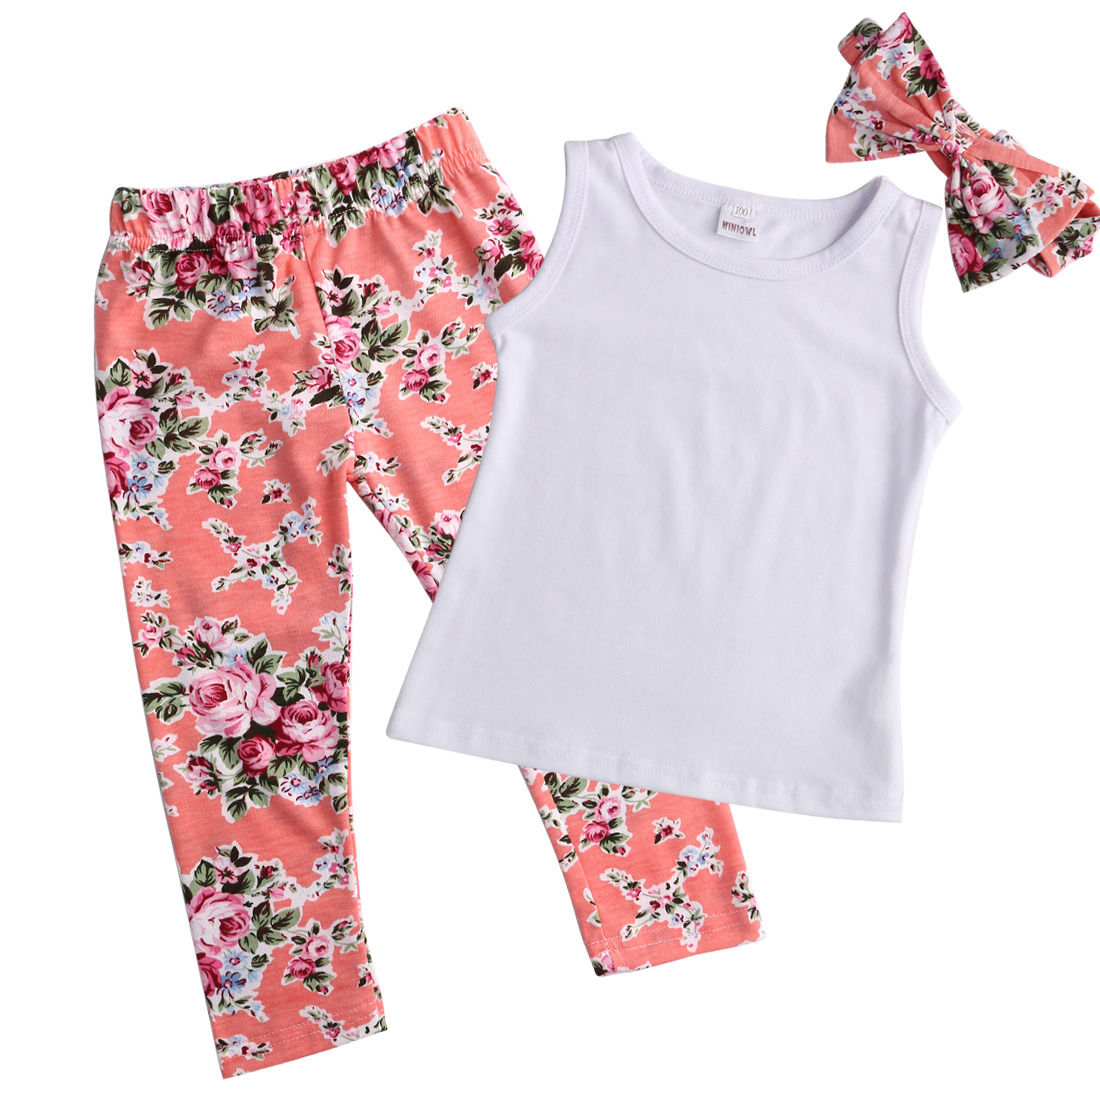 Tops T-shirt Vest Long Pants Children Kids Baby Girls Clothing 3pcs Flower Vintage Bow Hairband Cotton Clothes Sets Summer New flower sleeveless vest t shirt tops vest shorts pants outfit girl clothes set 2pcs baby children girls kids clothing bow knot